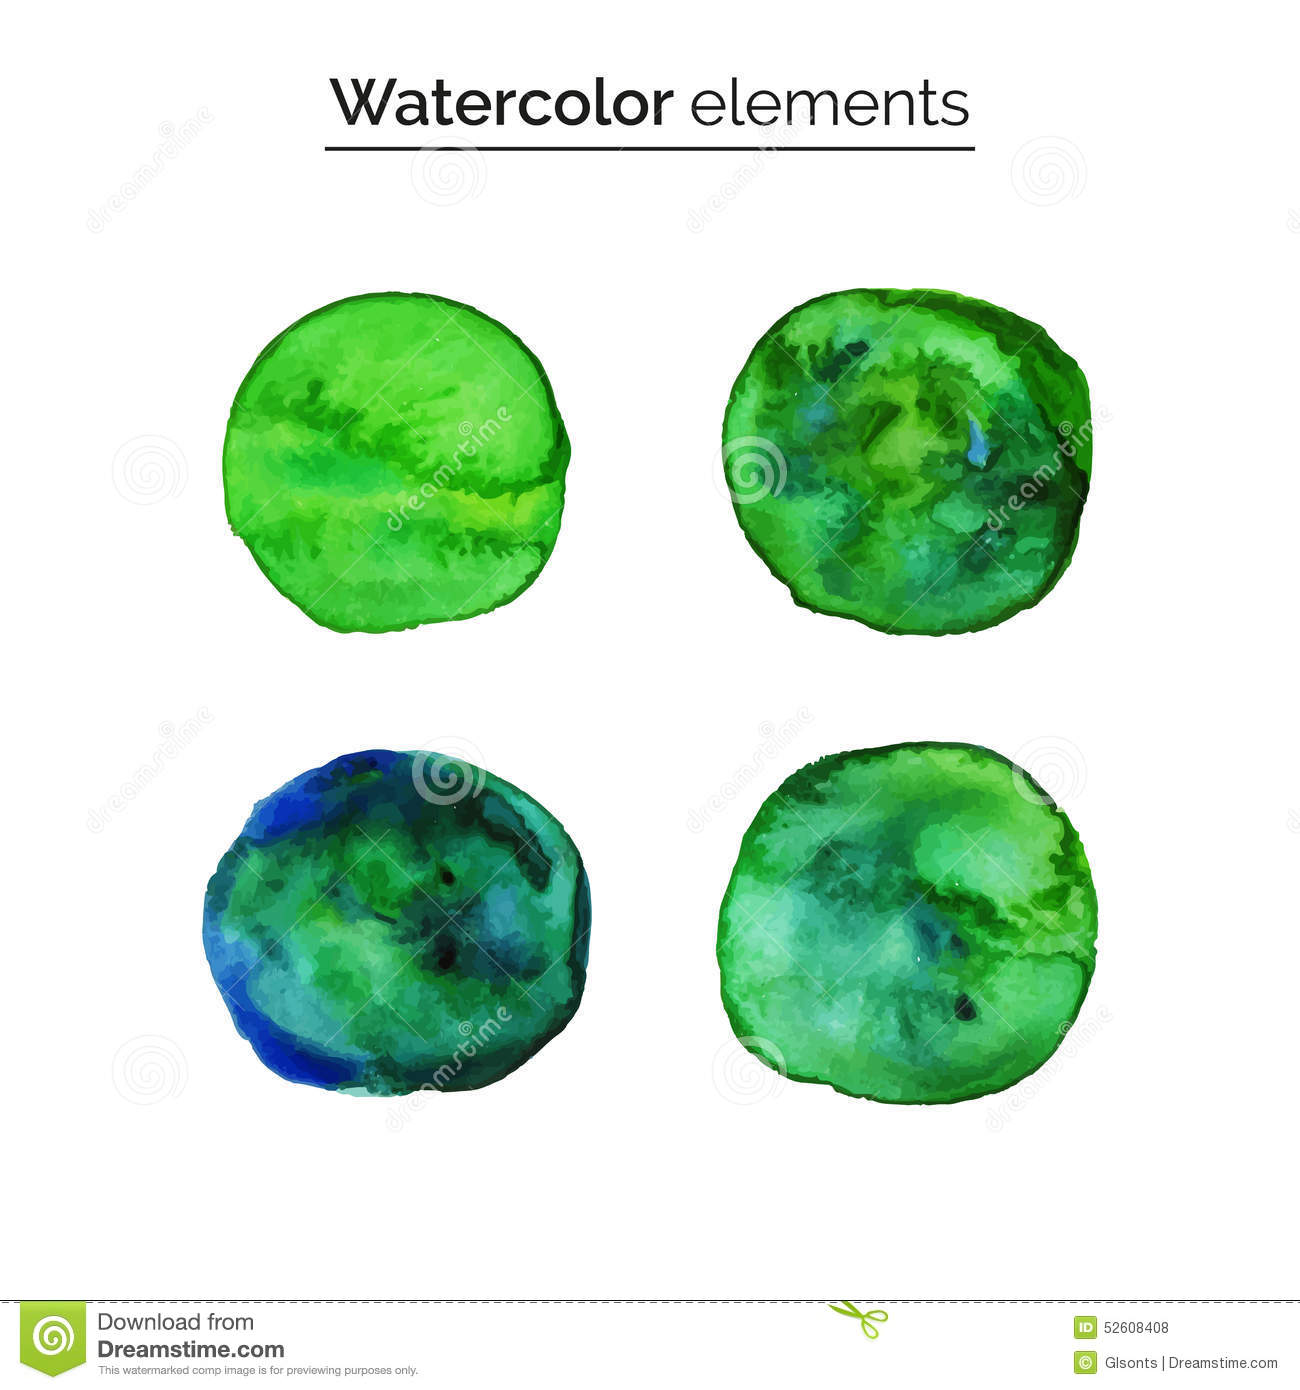 green watercolor design elements set isolated watercolor paint